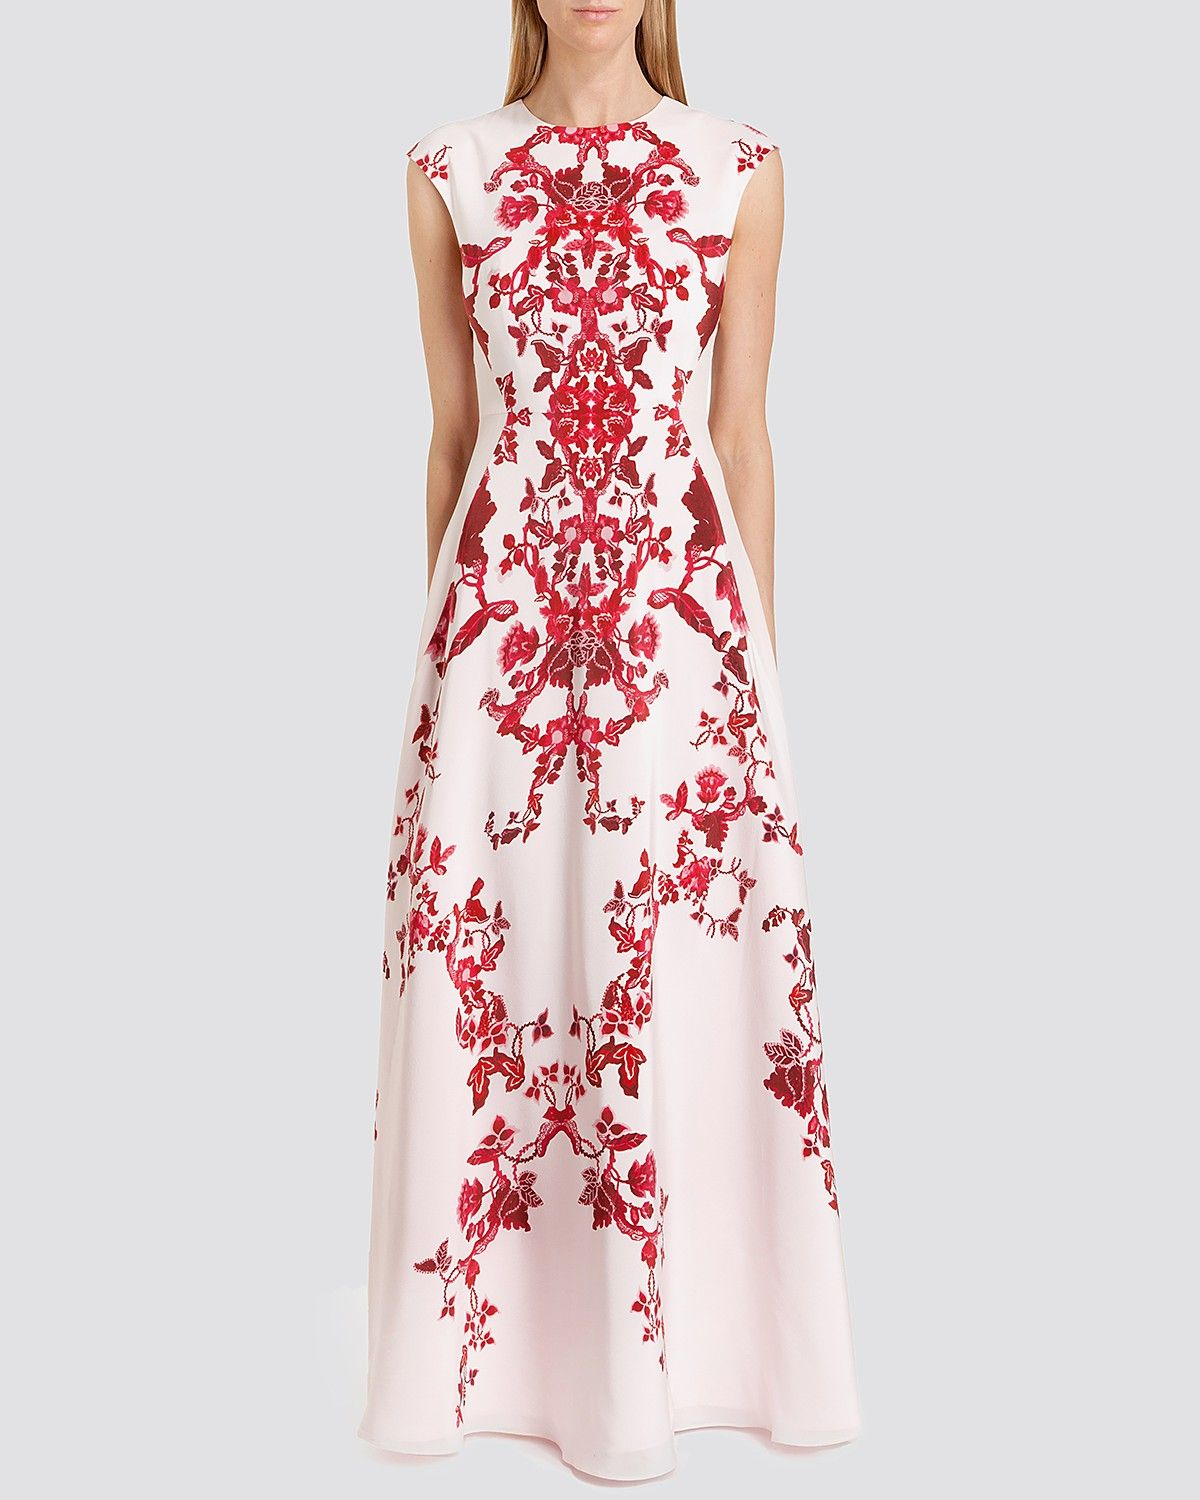 f6a4f602f7c8 ... women s fashion clothing. Ted Baker Gown - Nelum Asian Floral